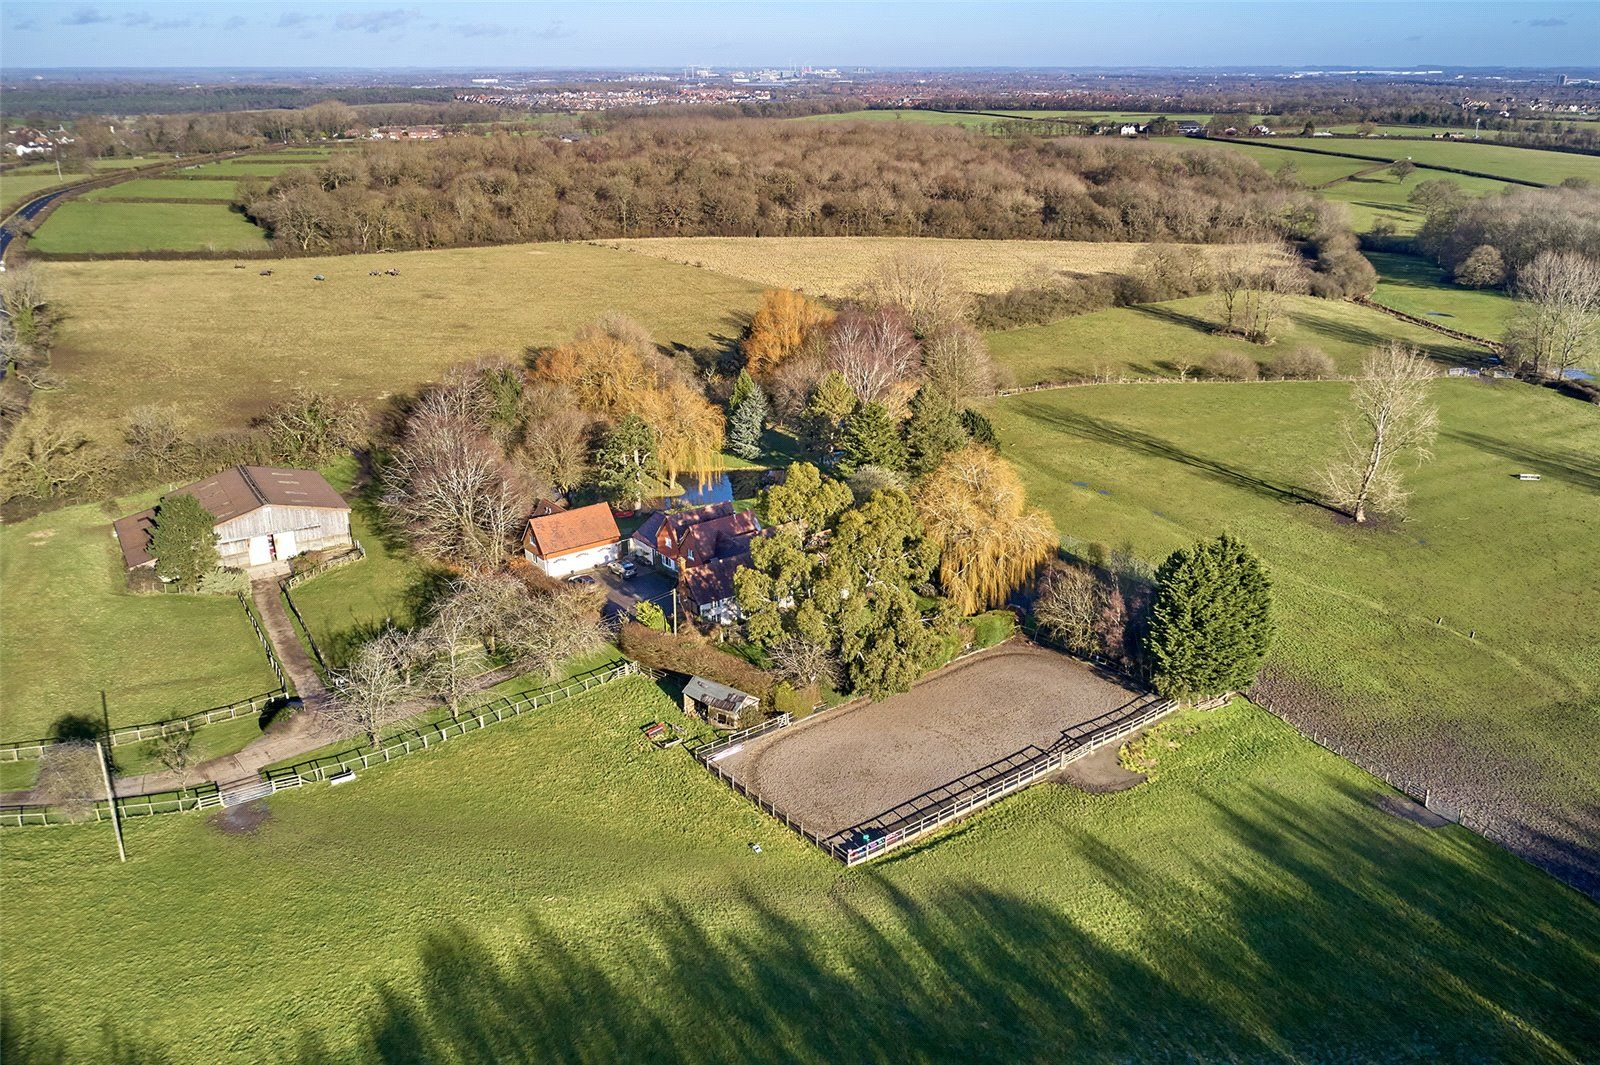 Property photo 1 of 20. Main Aerial